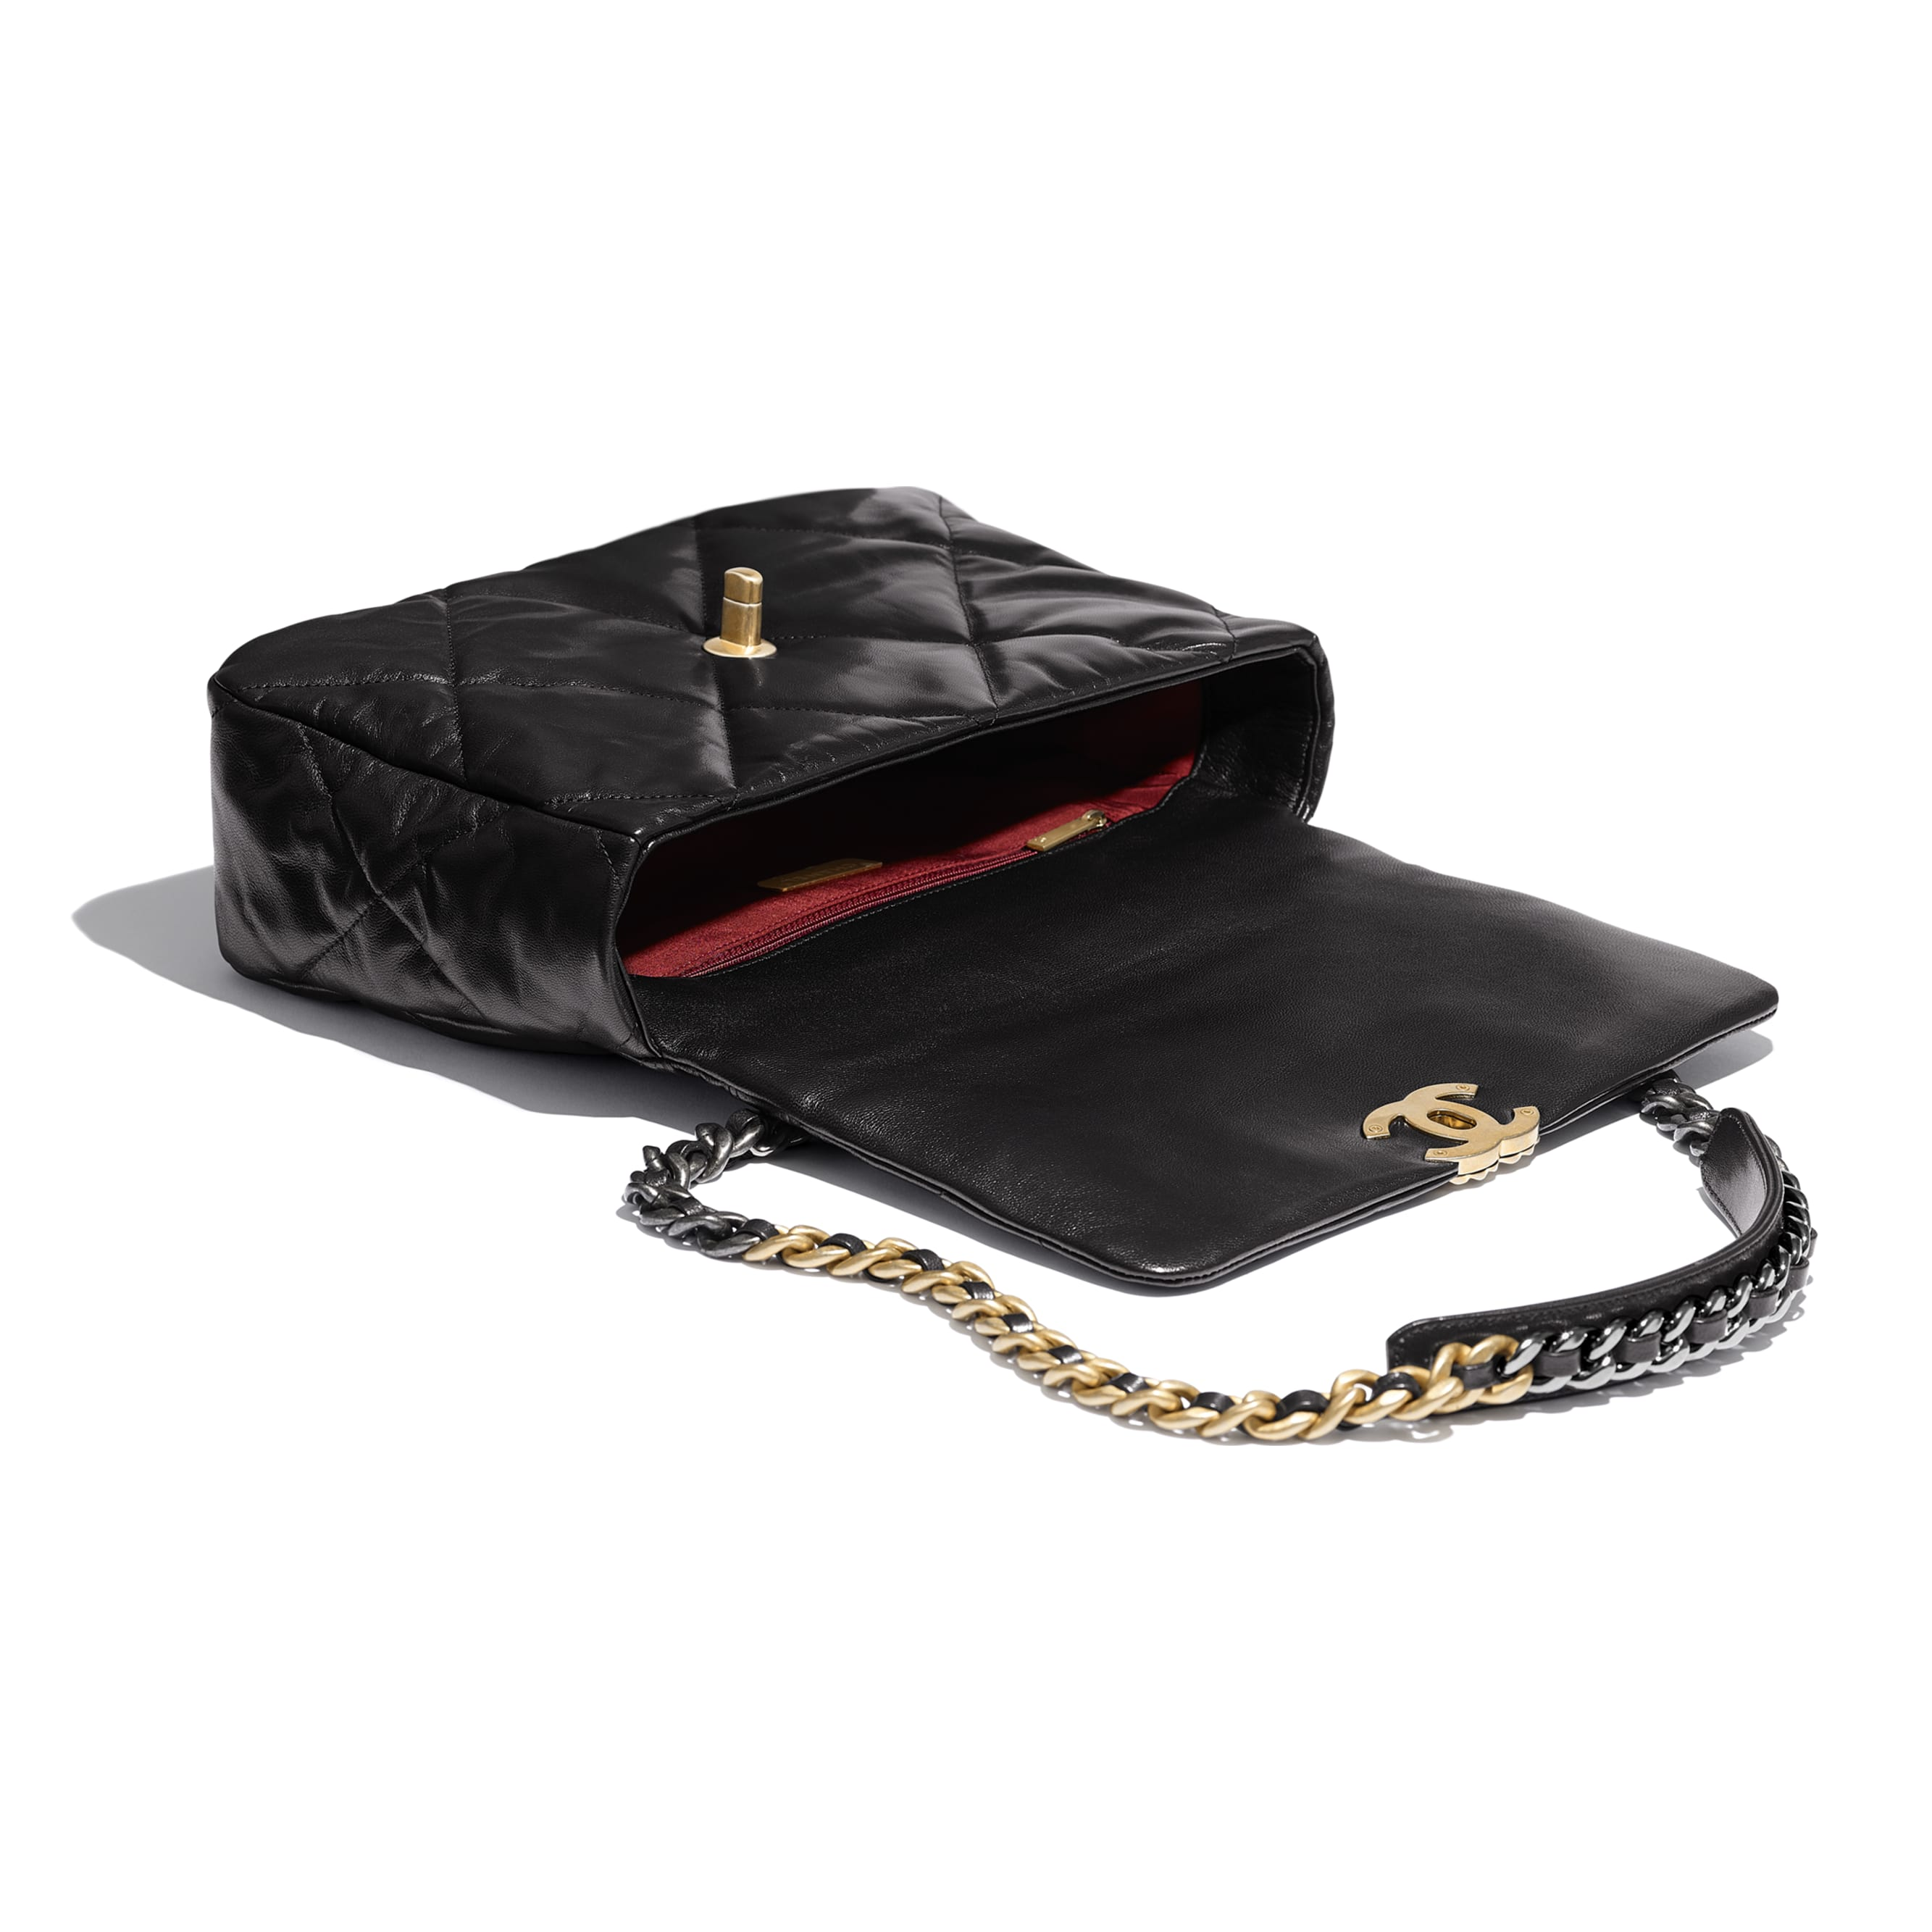 CHANEL 19 Large Flap Bag - Black - Lambskin, Gold-Tone, Silver-Tone & Ruthenium-Finish Metal - CHANEL - Other view - see standard sized version